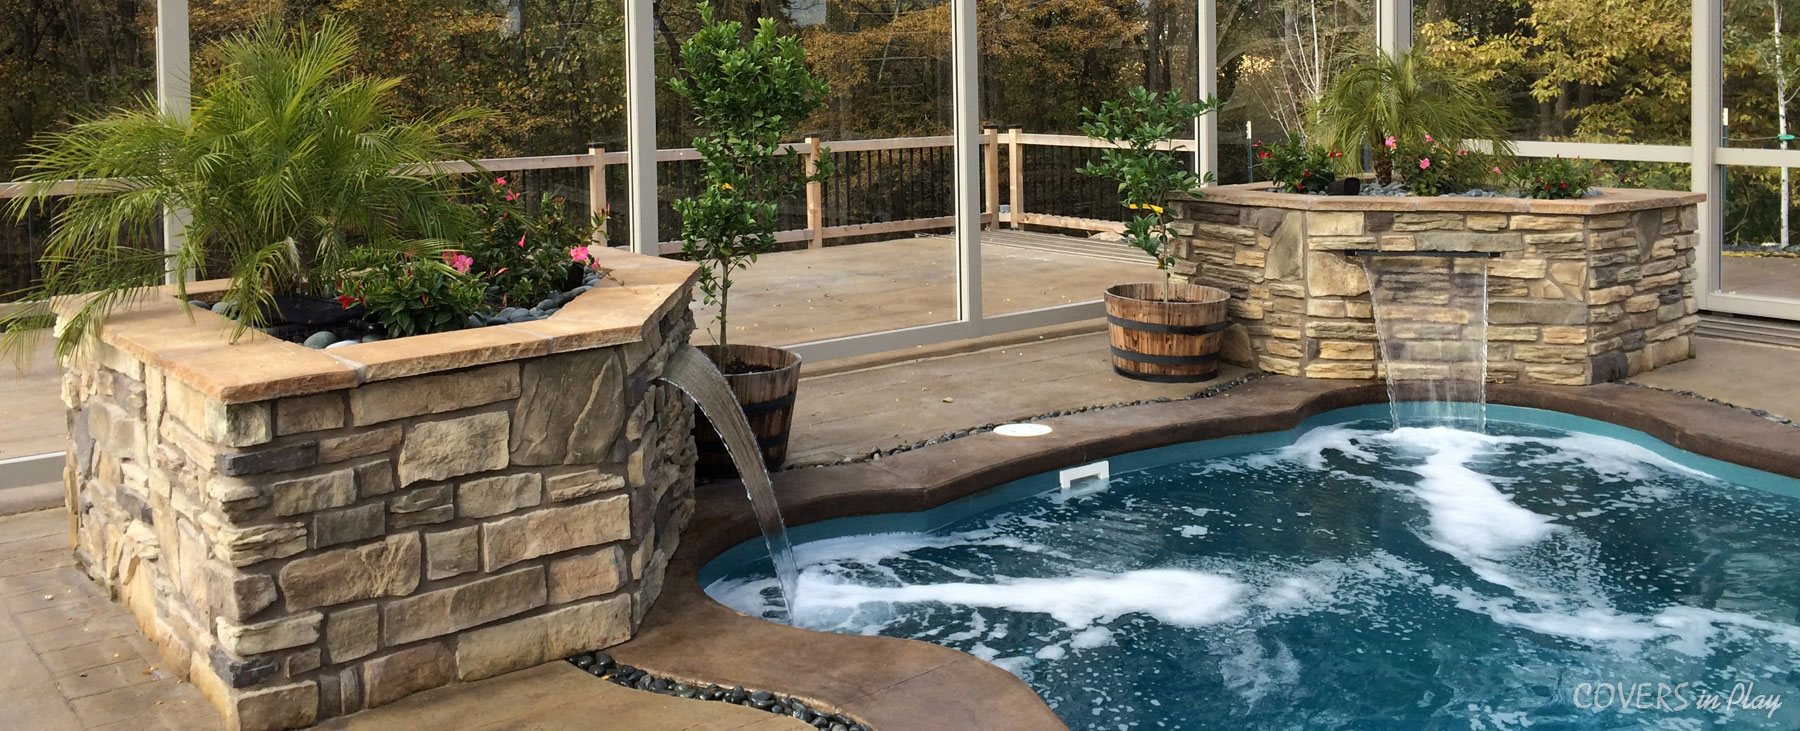 Covered Pool with waterfall